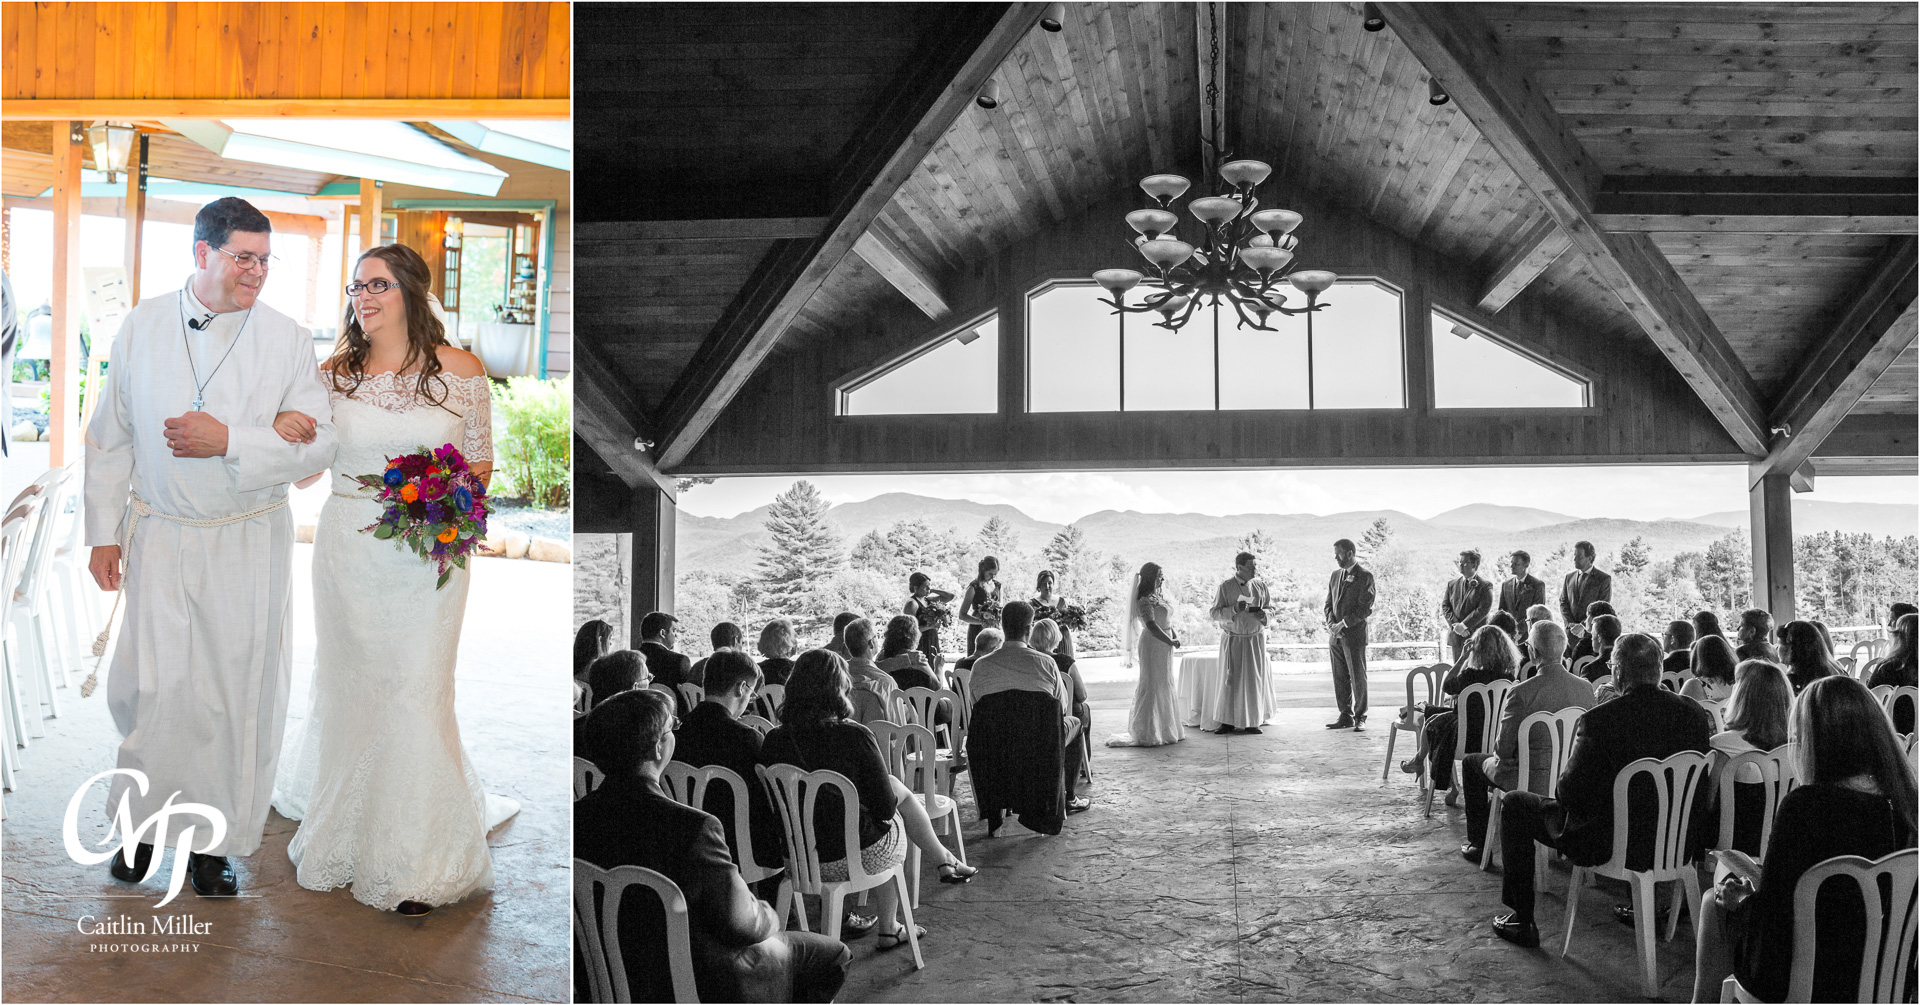 routh-10.jpg from Becky and Mike's Summer wedding at the Lake Placid Club in Lake Placid, NY by Lake Placid Wedding Photographer Caitlin Miller Photography. Lake George Wedding Photographer. Adirondack wedding photographer. Albany wedding photographer. Lake Placid Wedding Photographer. Saratoga Wedding Photographer